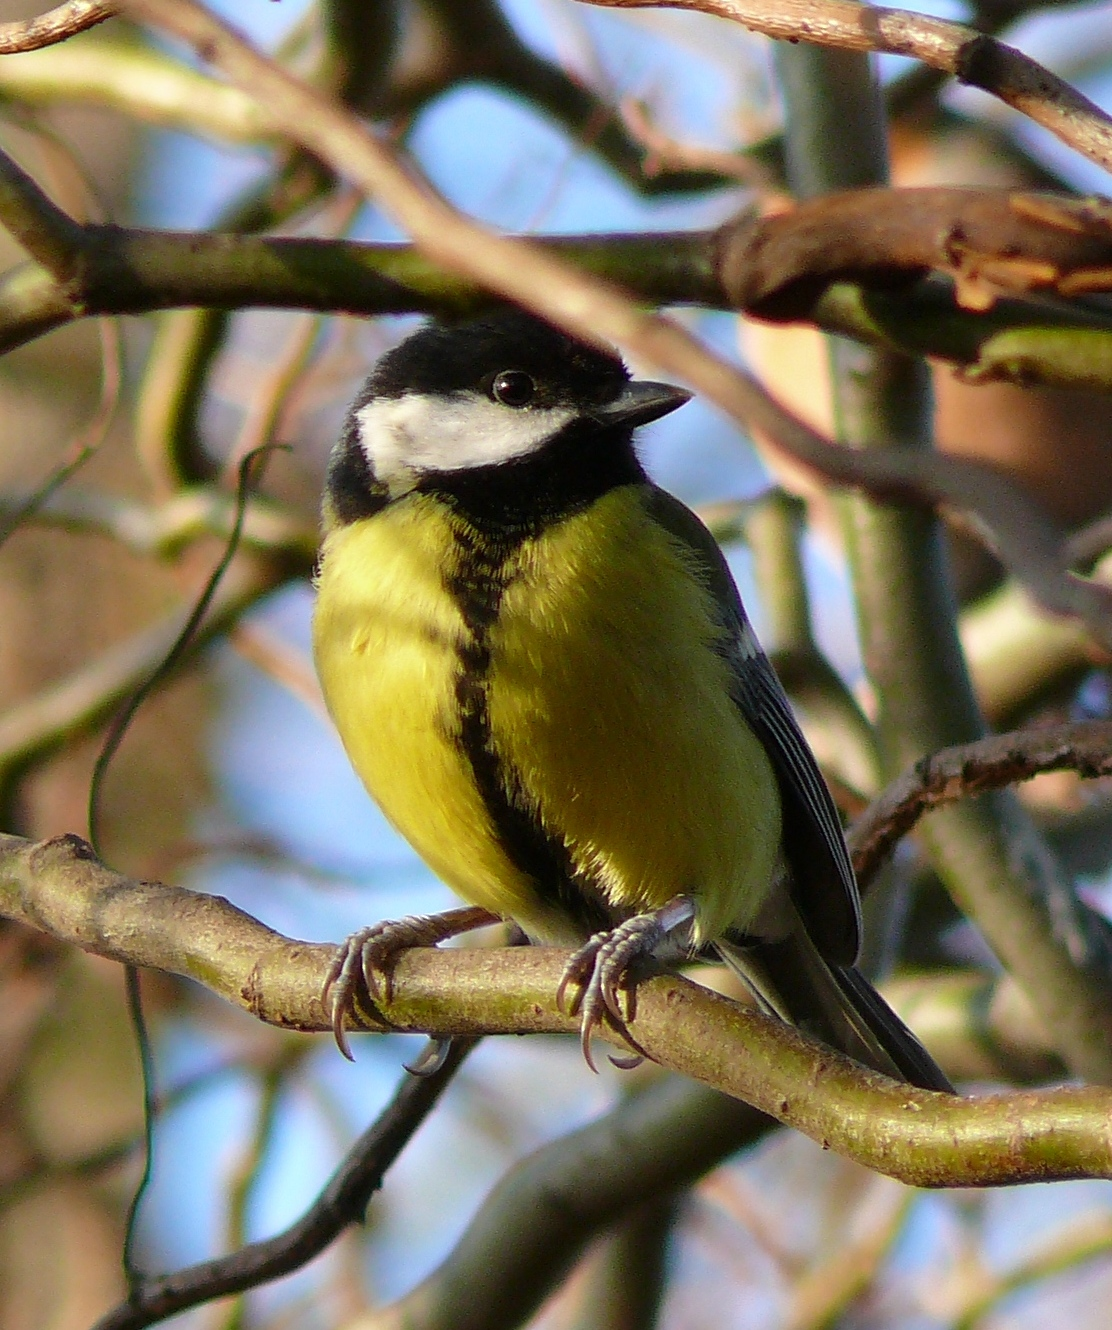 Know Your Birdsong Click Through Our Quick Guide To The